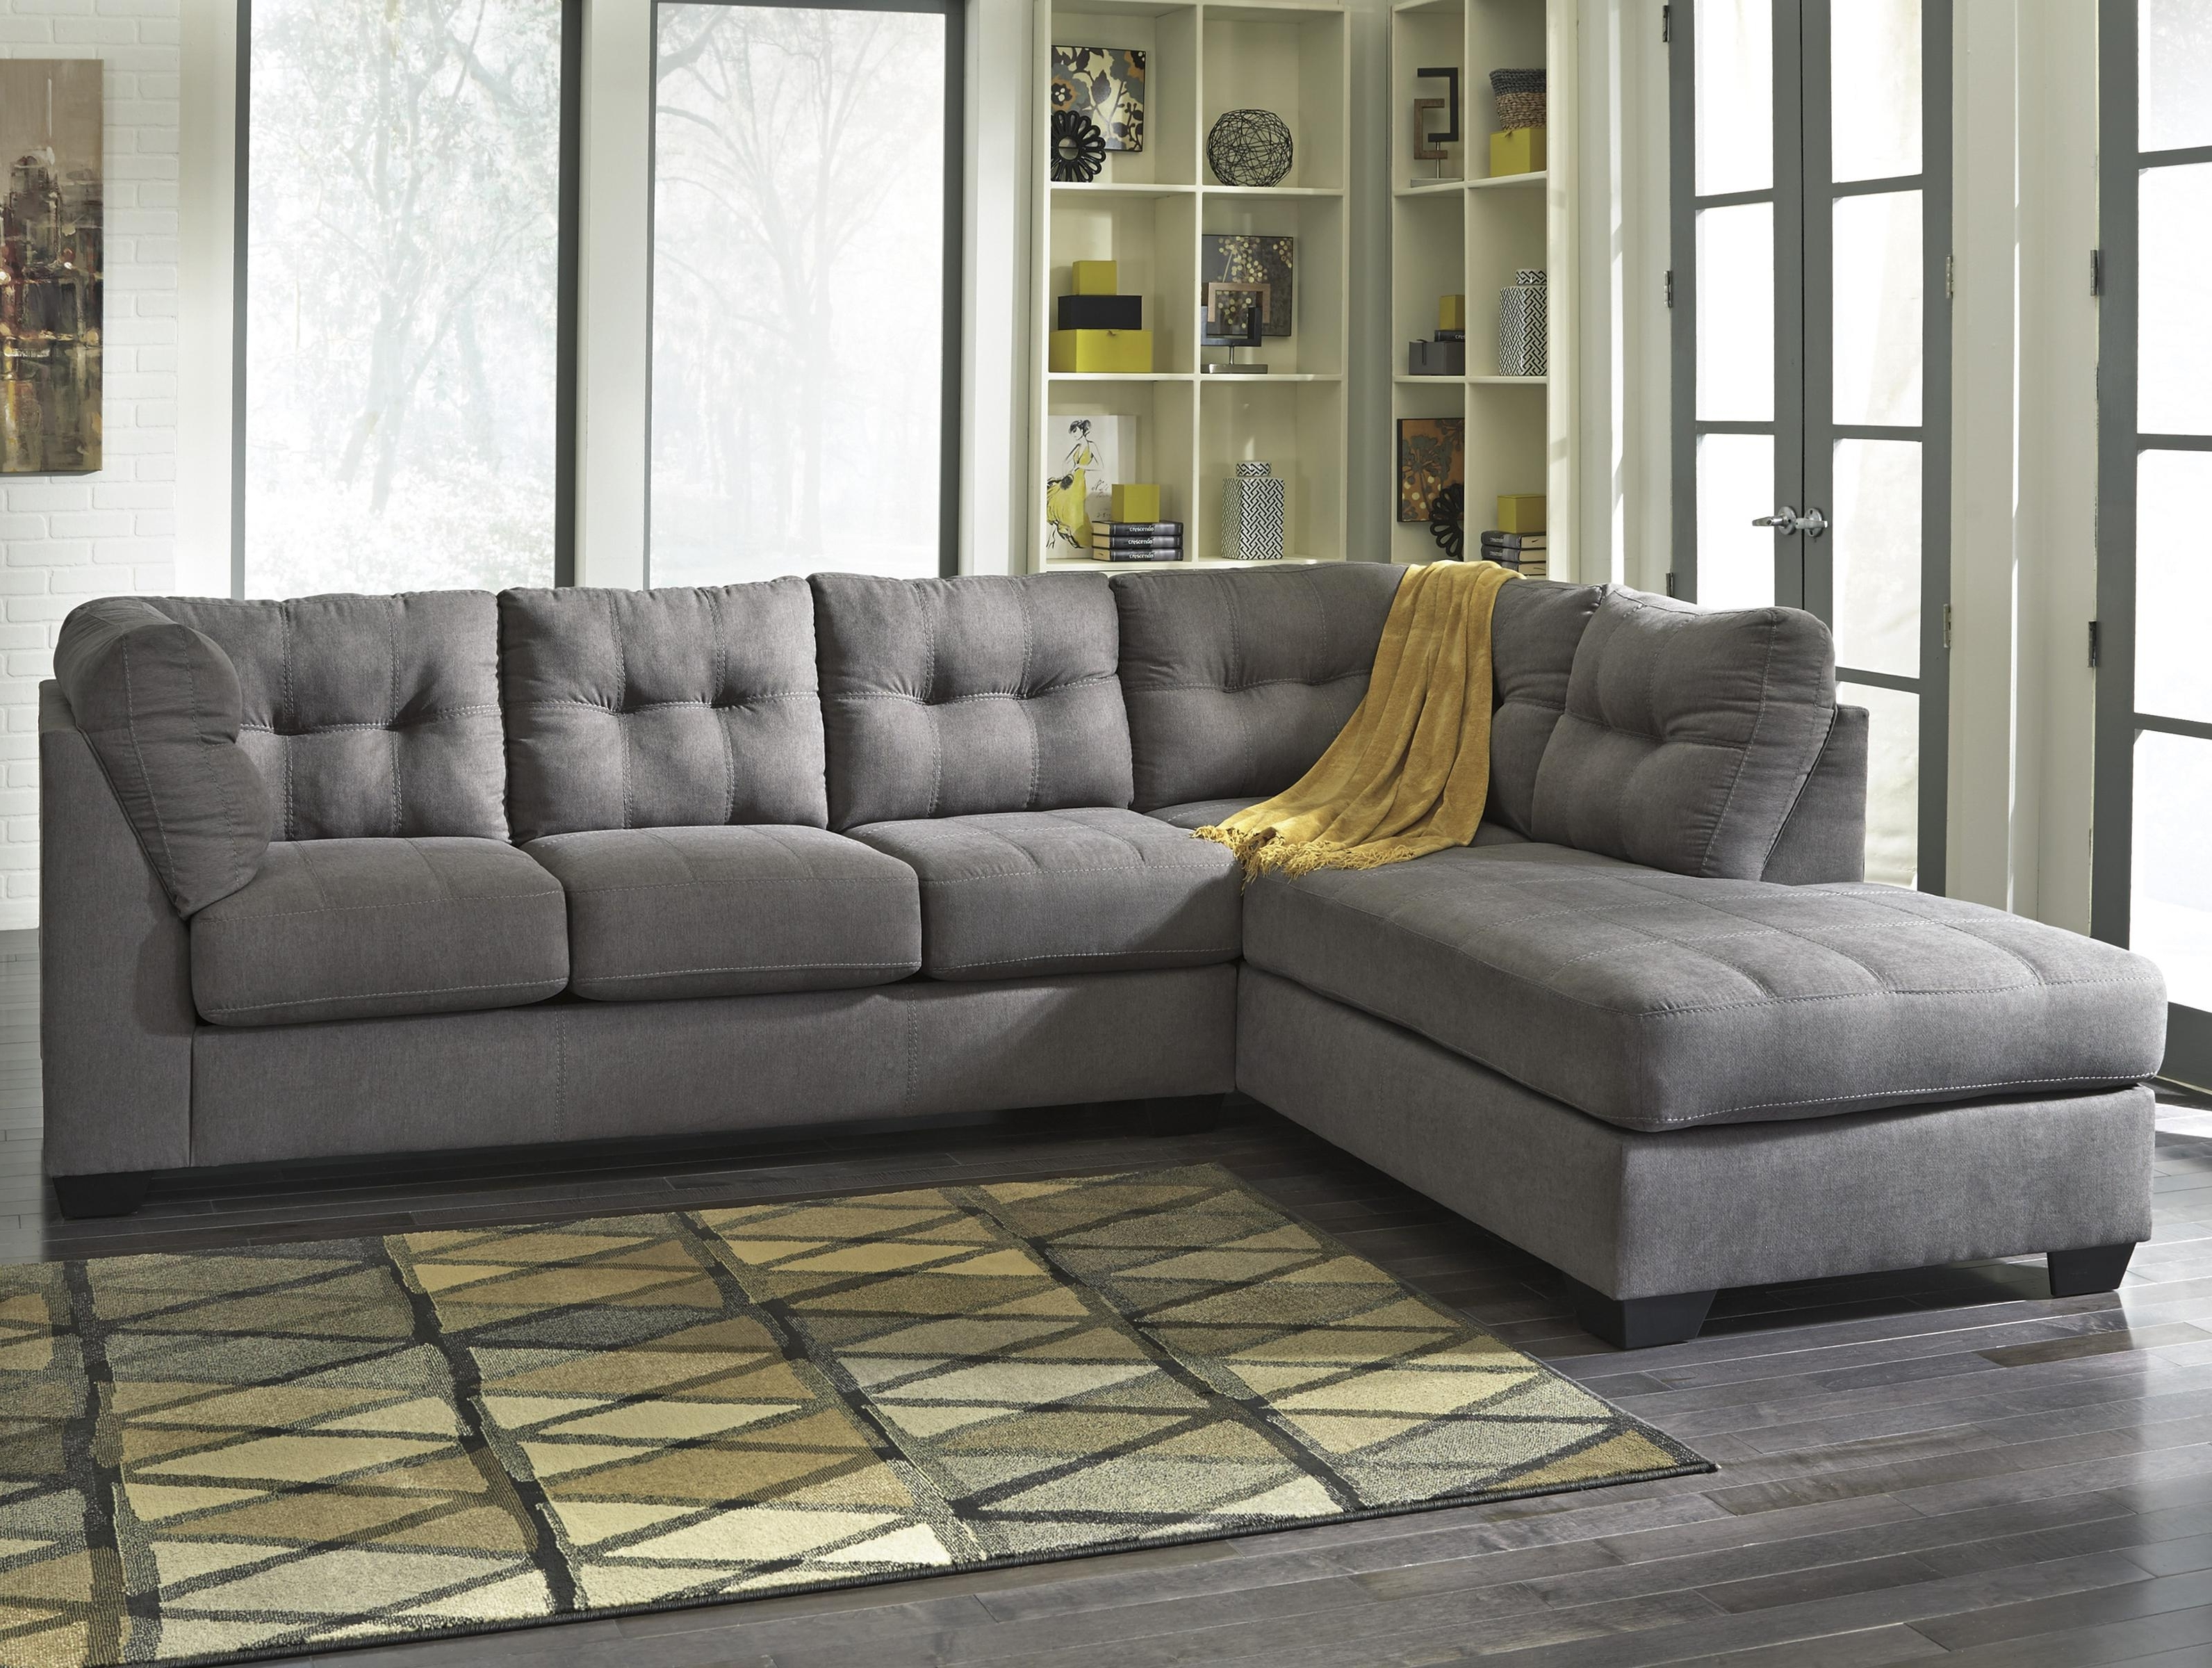 Most Recently Released Benchcraftashley Maier – Charcoal 2 Piece Sectional With Left Pertaining To 2 Piece Sectionals With Chaise (View 3 of 15)